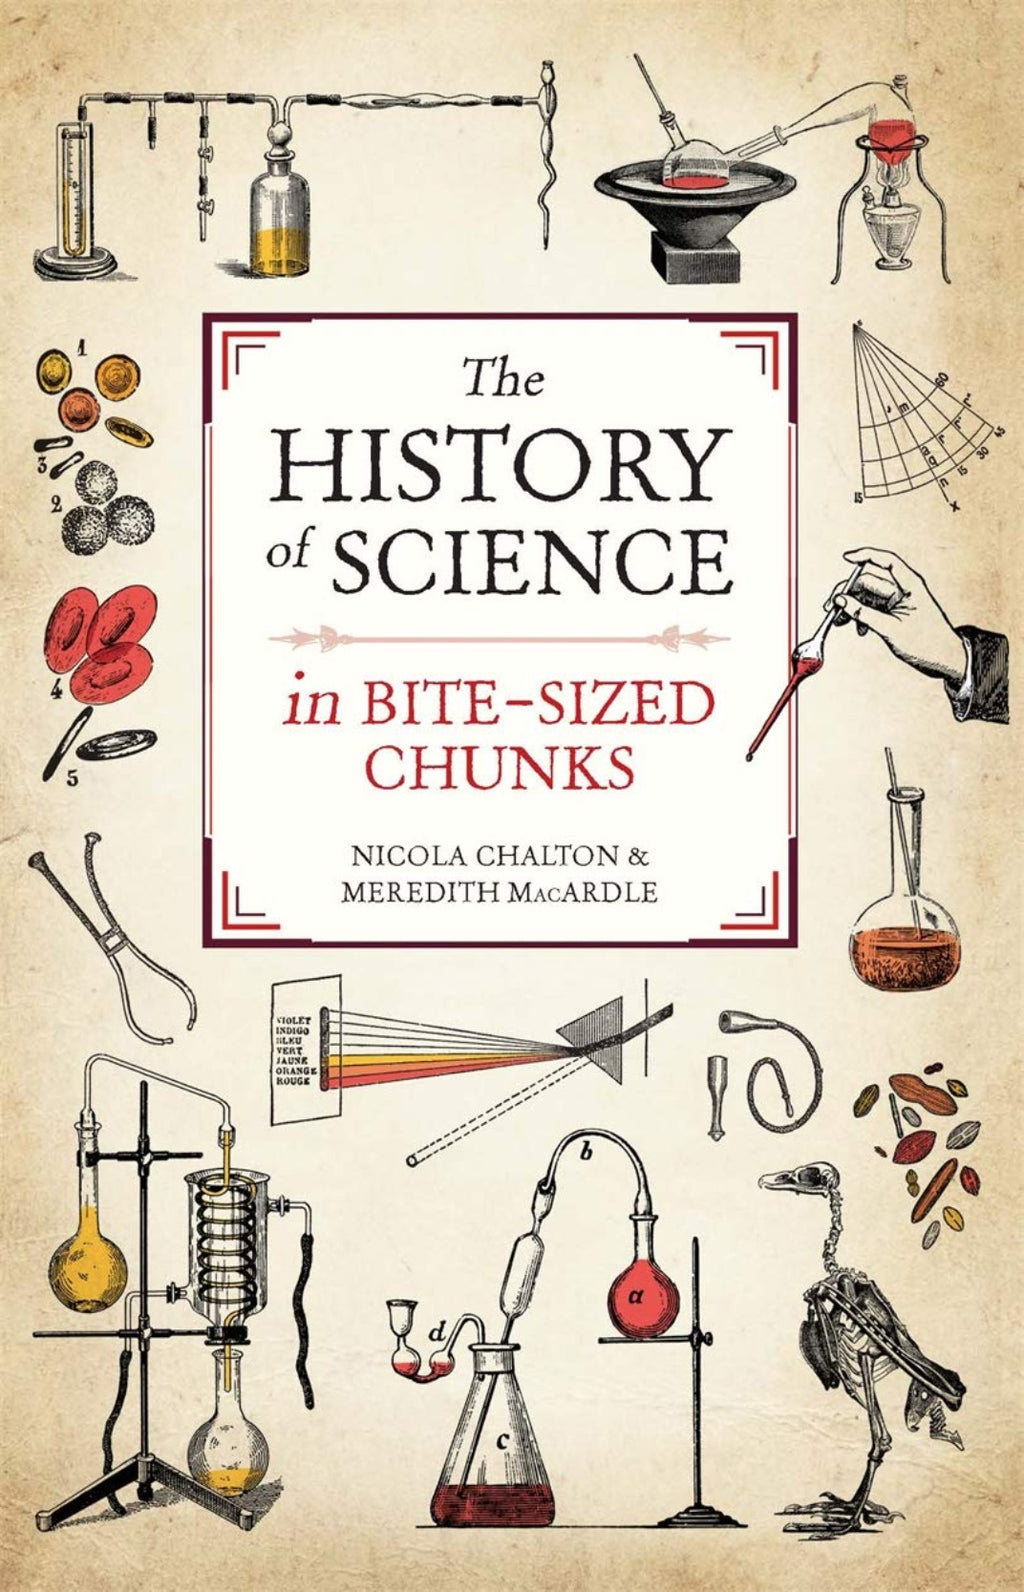 The History of Science in Bite-sized Chunks